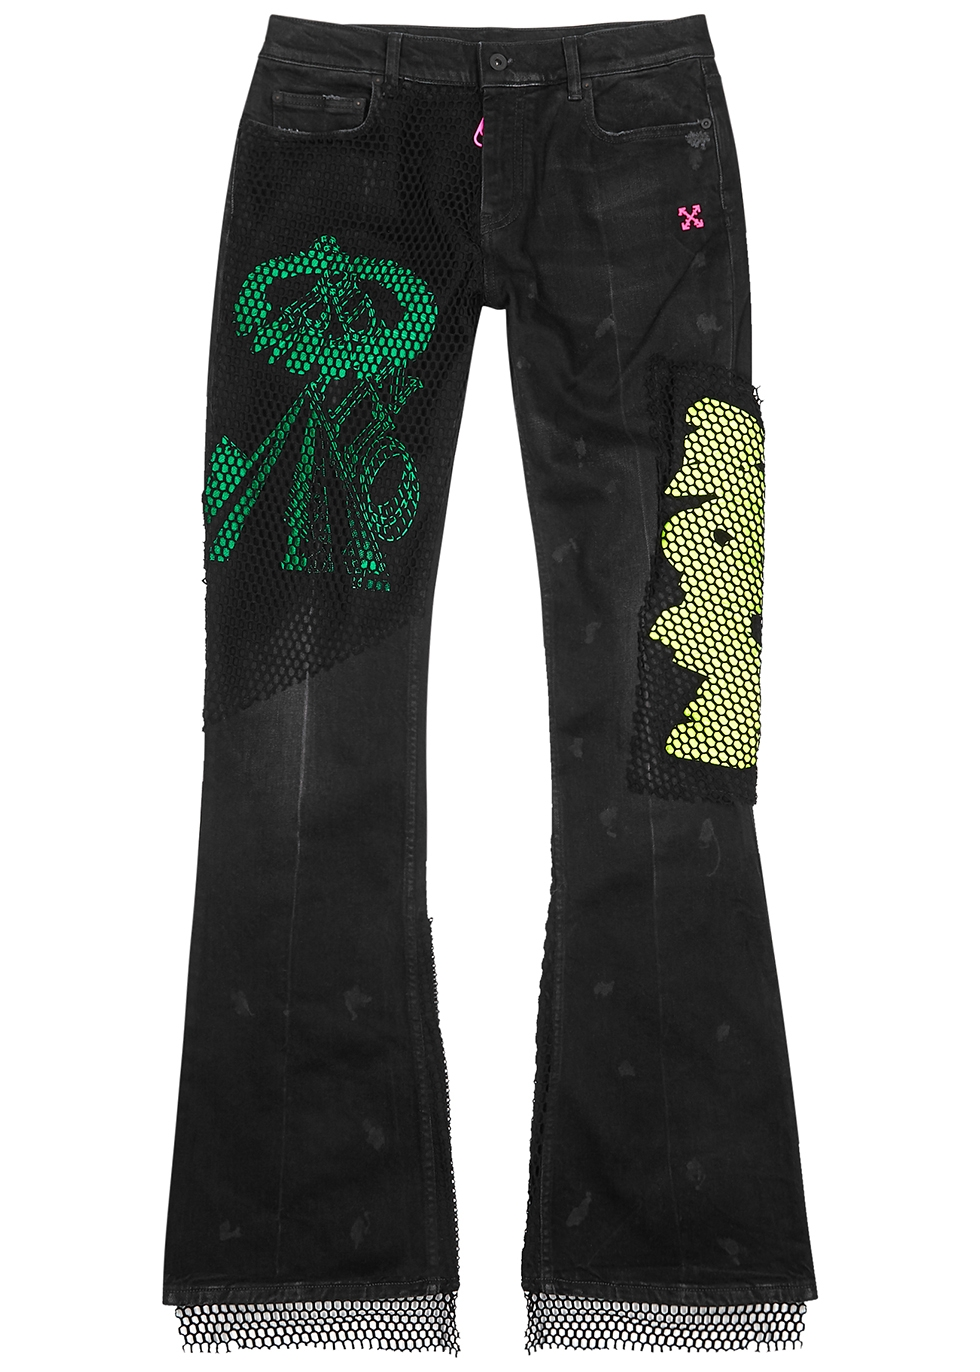 Black embroidered skinny flared jeans